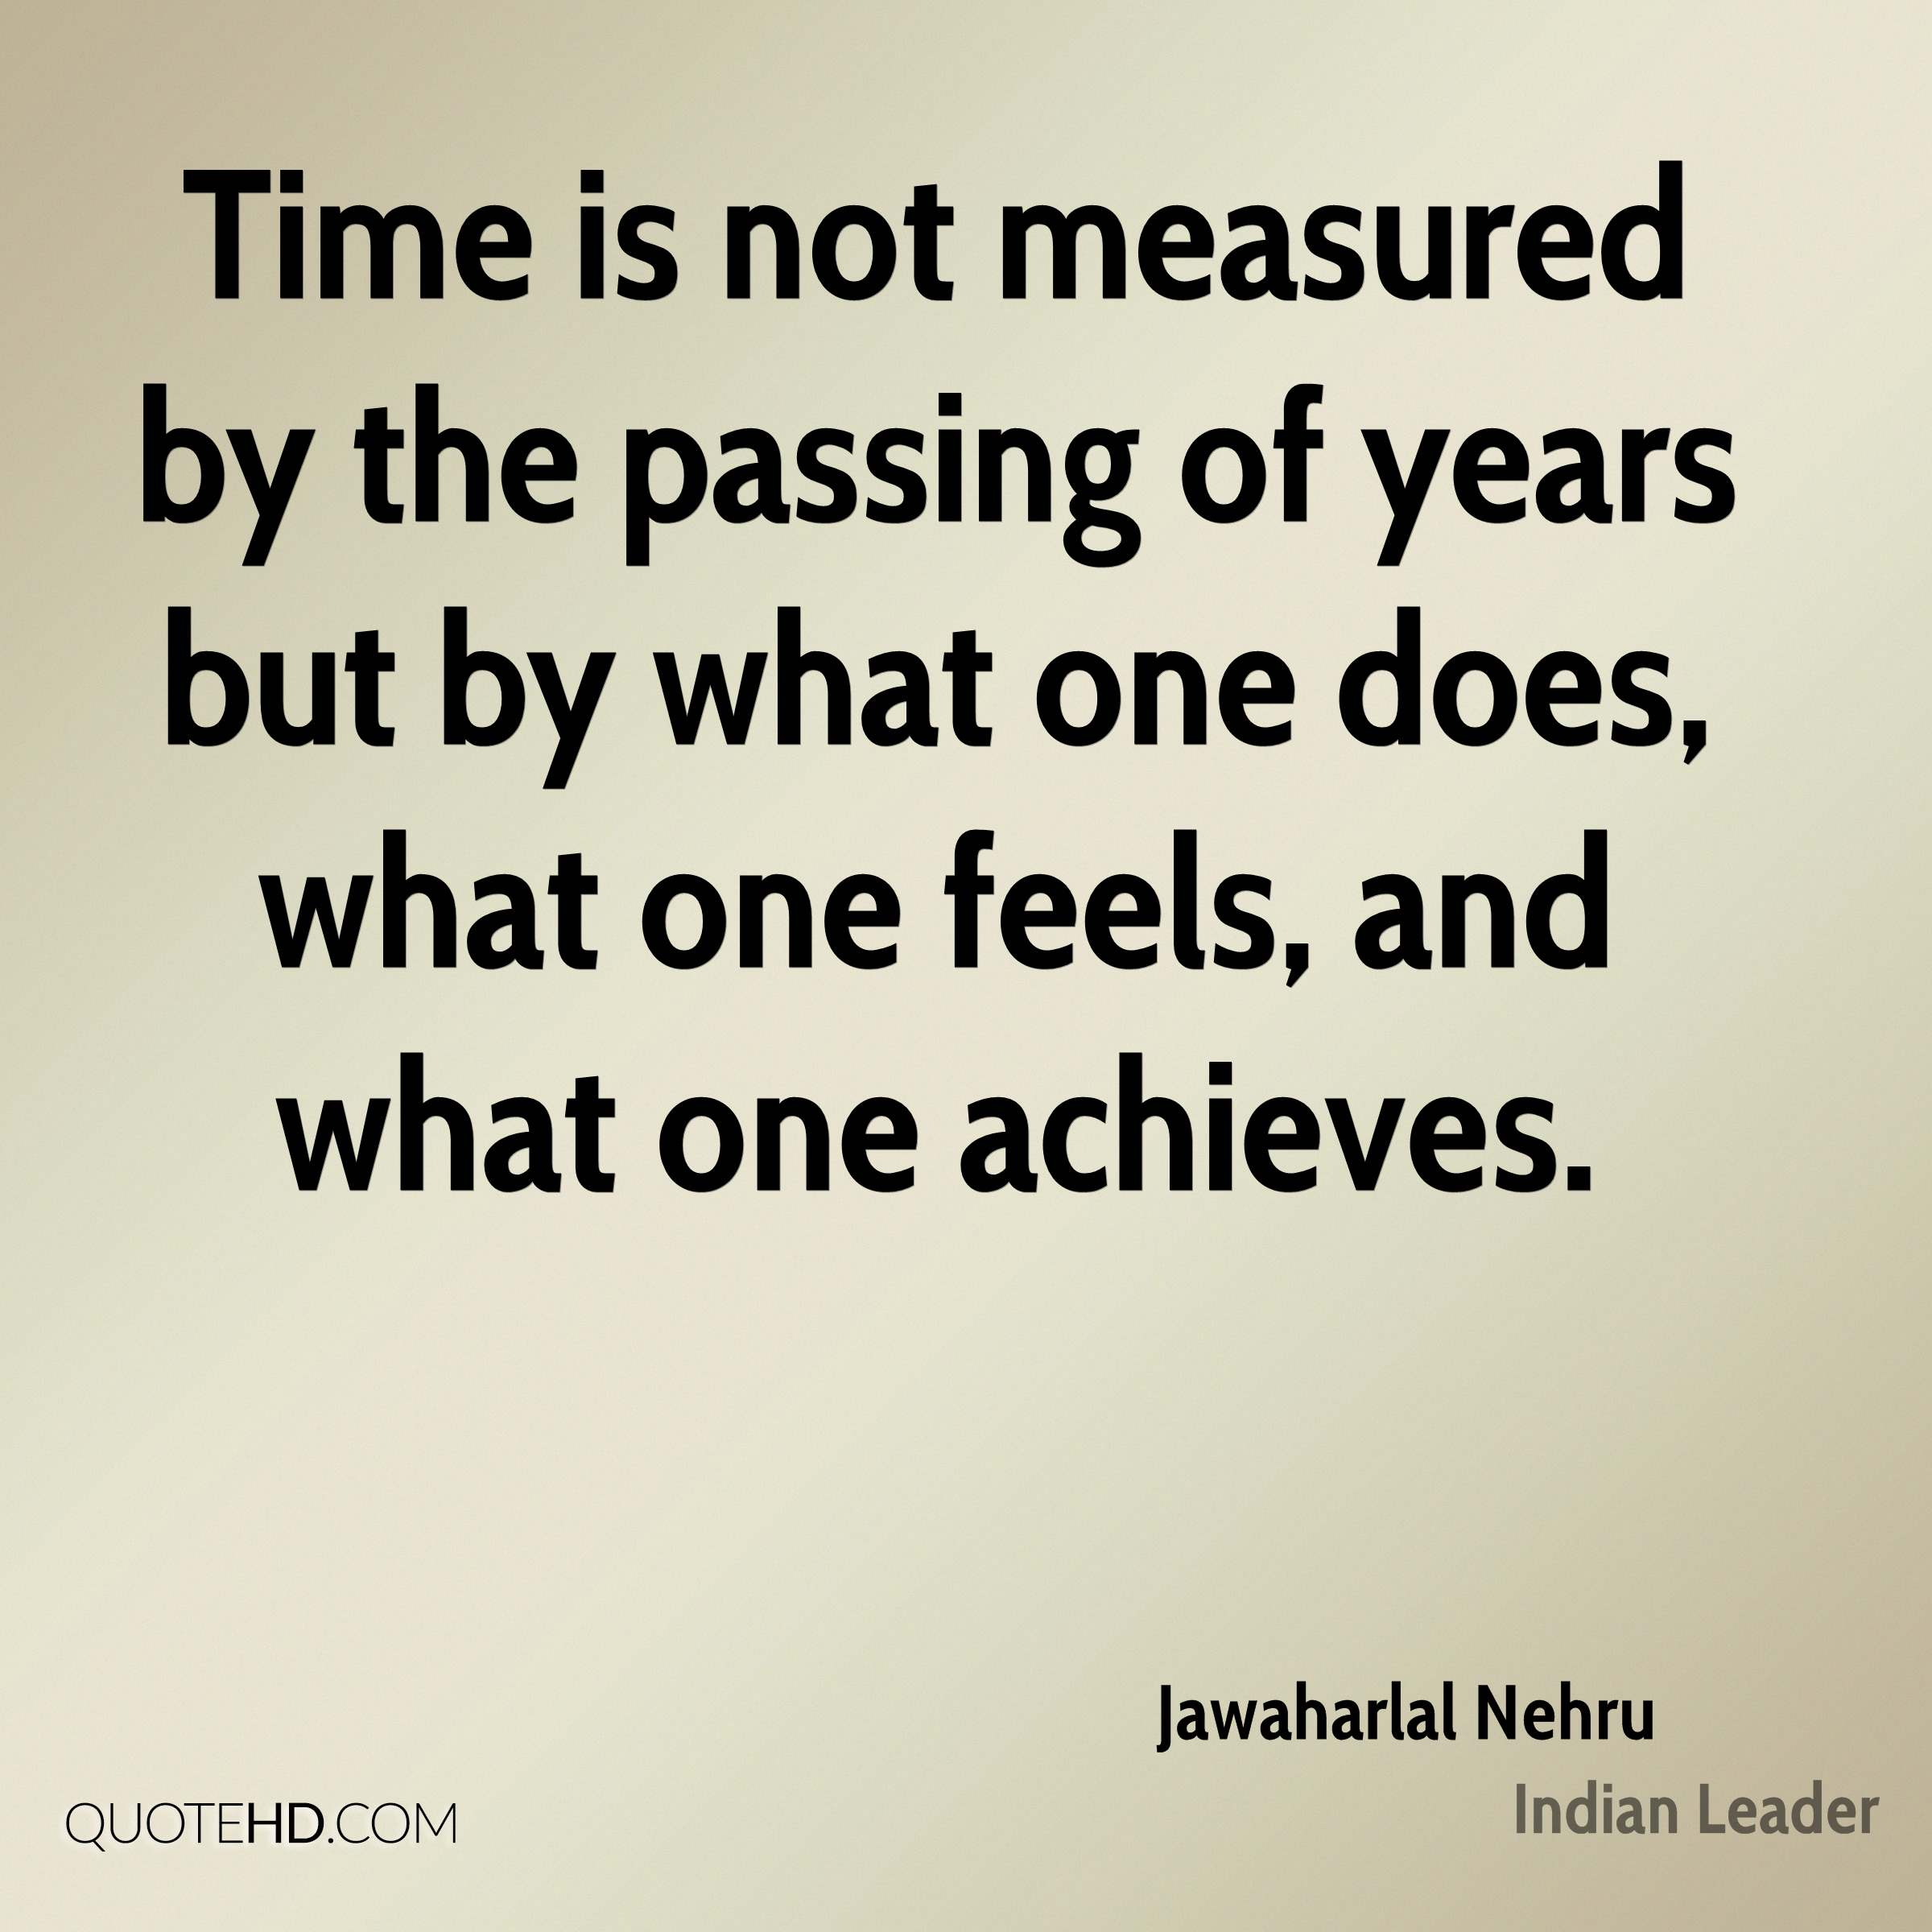 jawaharlal nehru time quotes quotehd